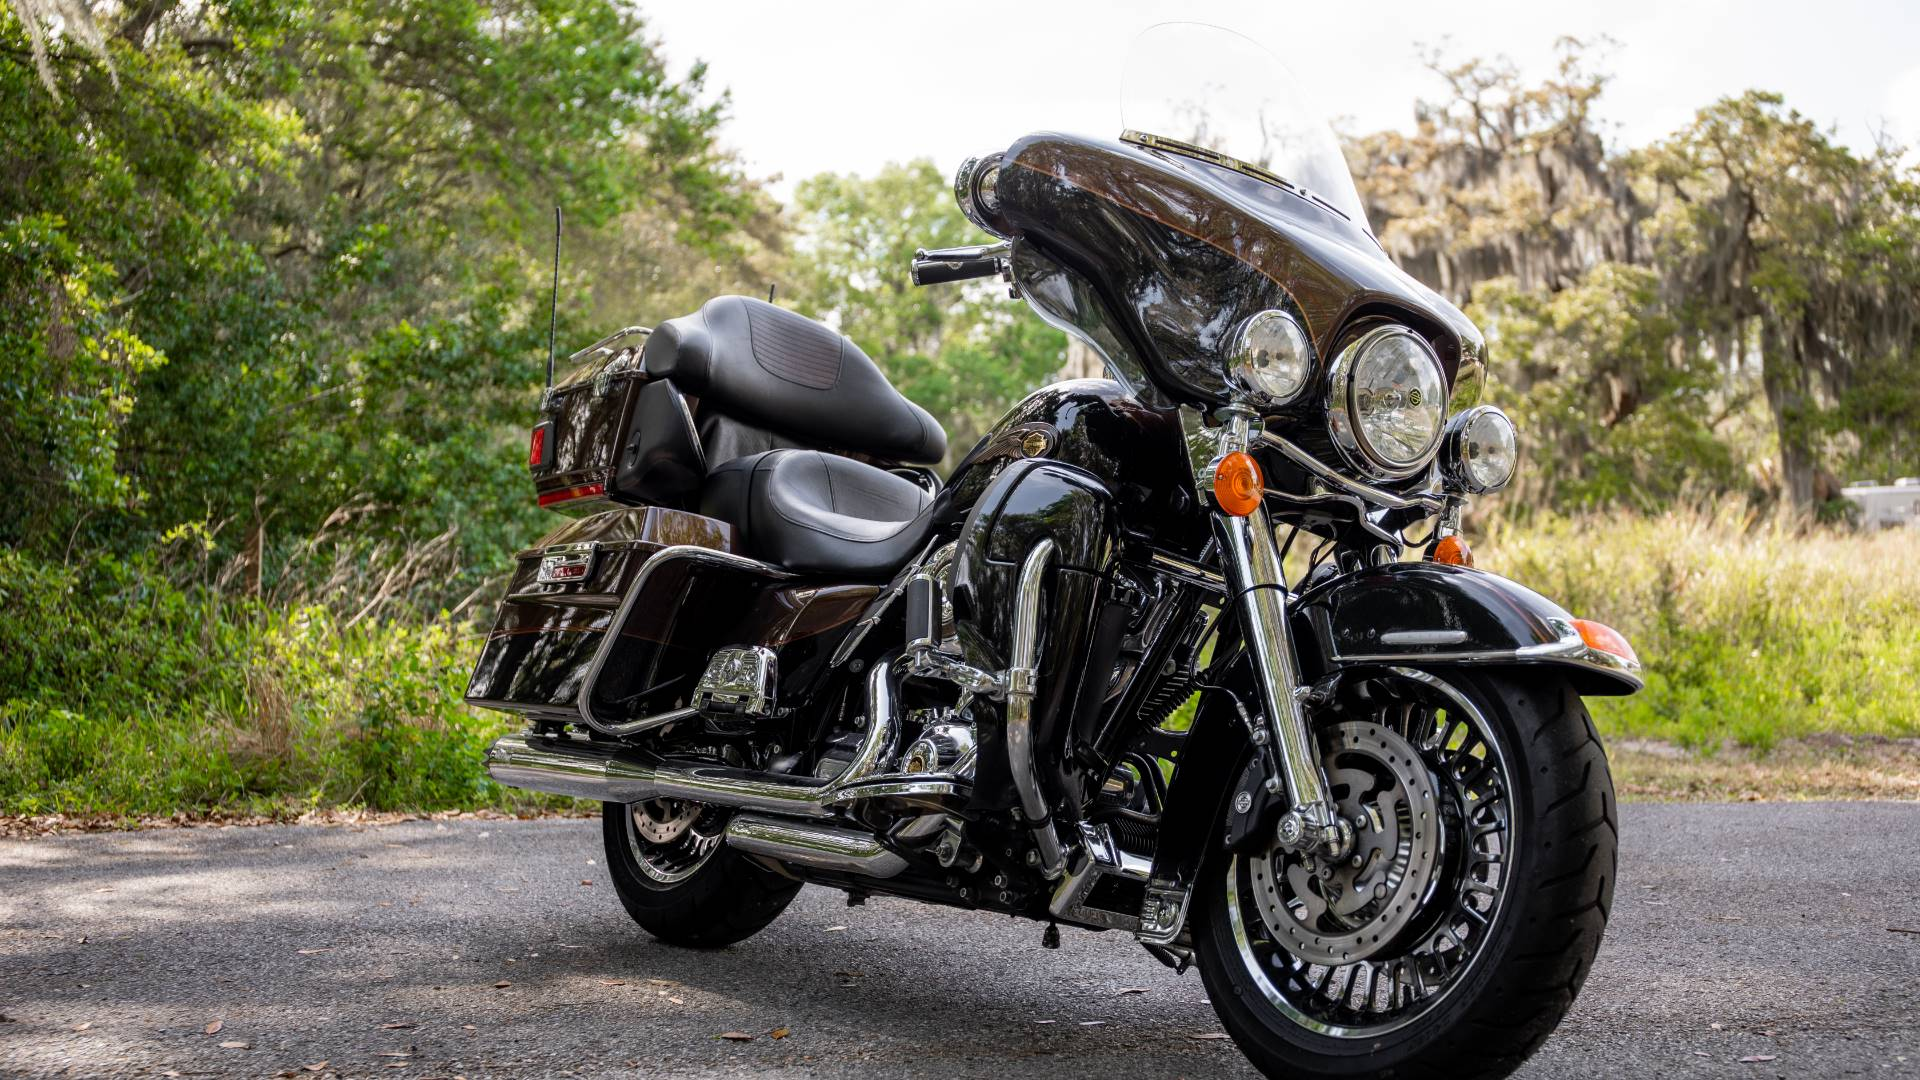 2013 Harley-Davidson Electra Glide® Ultra Limited 110th Anniversary Edition in Lakeland, Florida - Photo 2